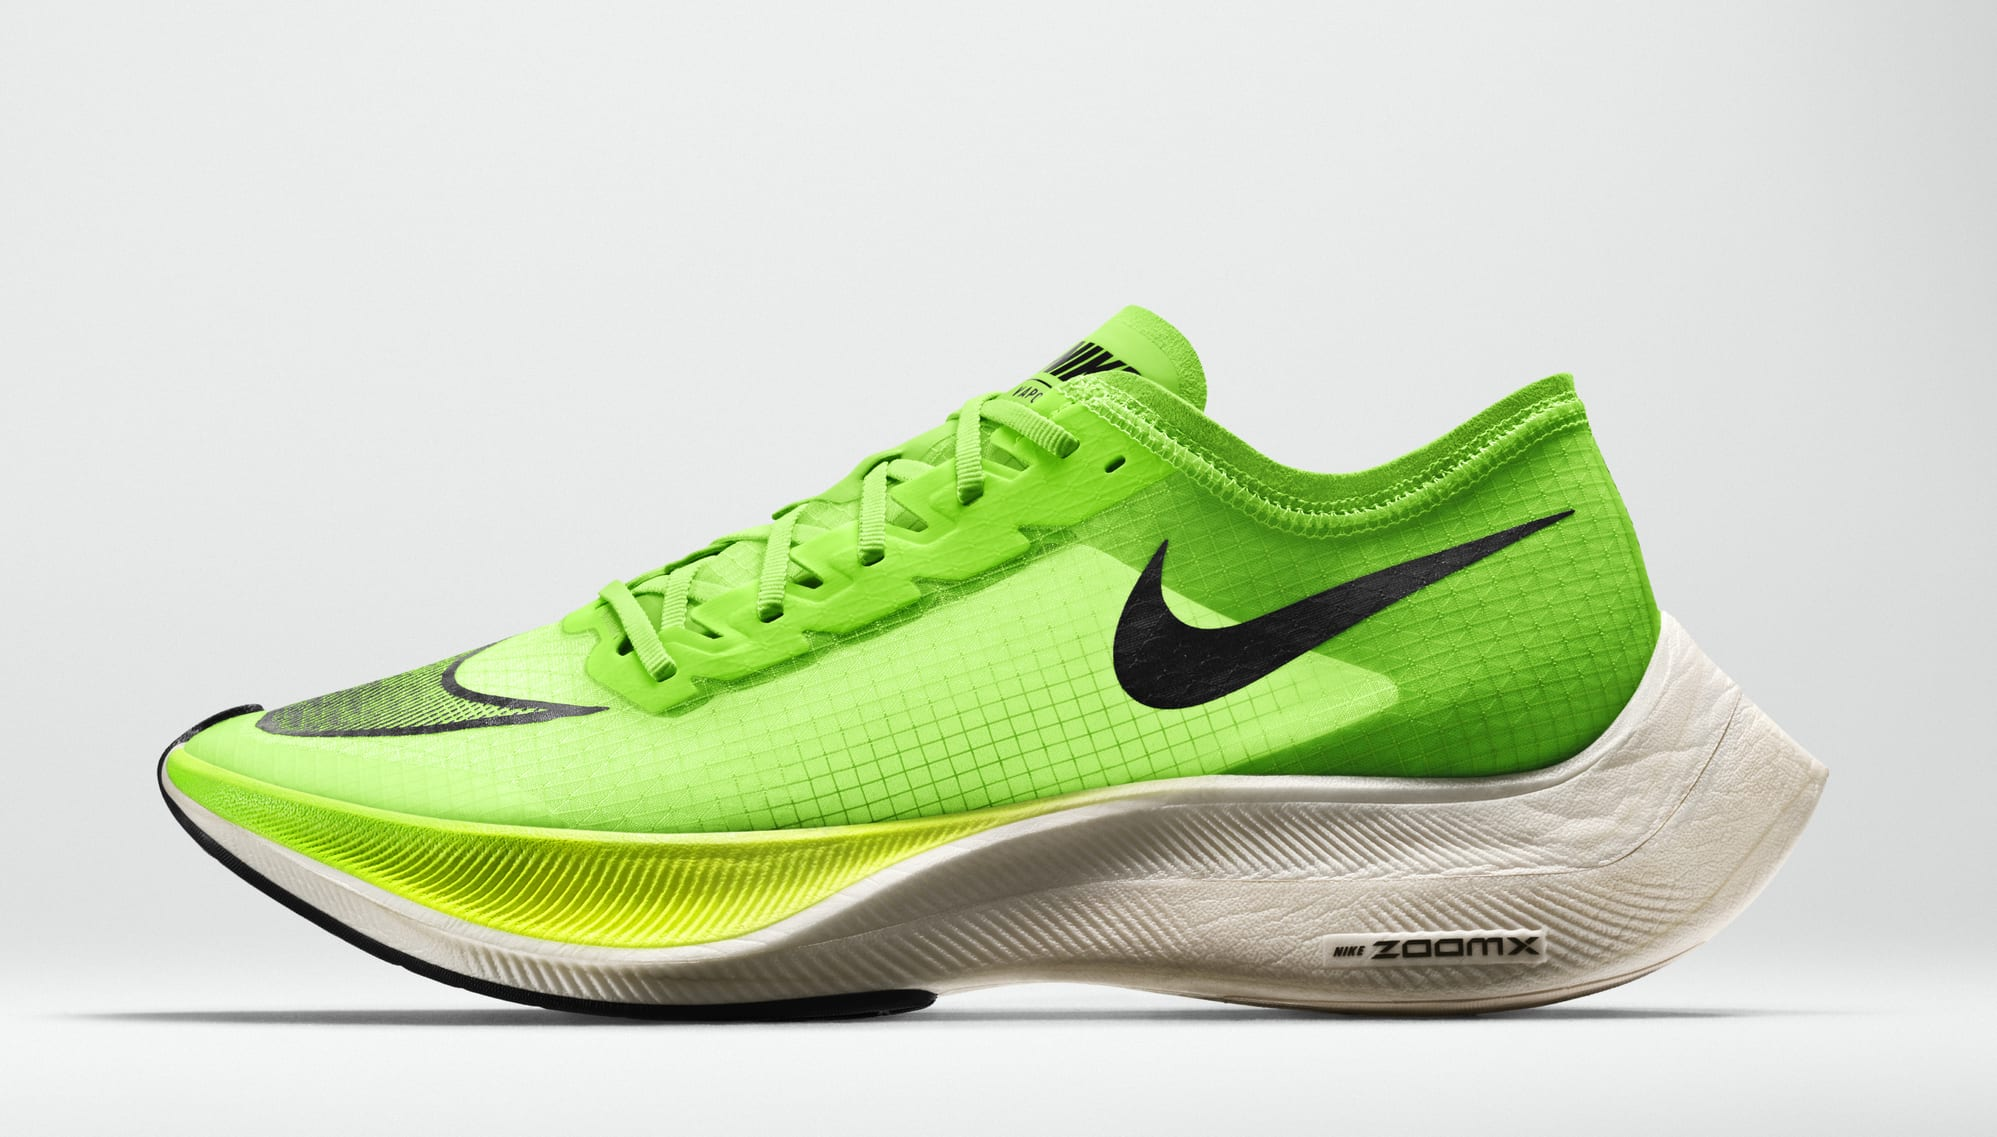 Nike ZoomX Vaporfly Next% Unveiled: Detailed s